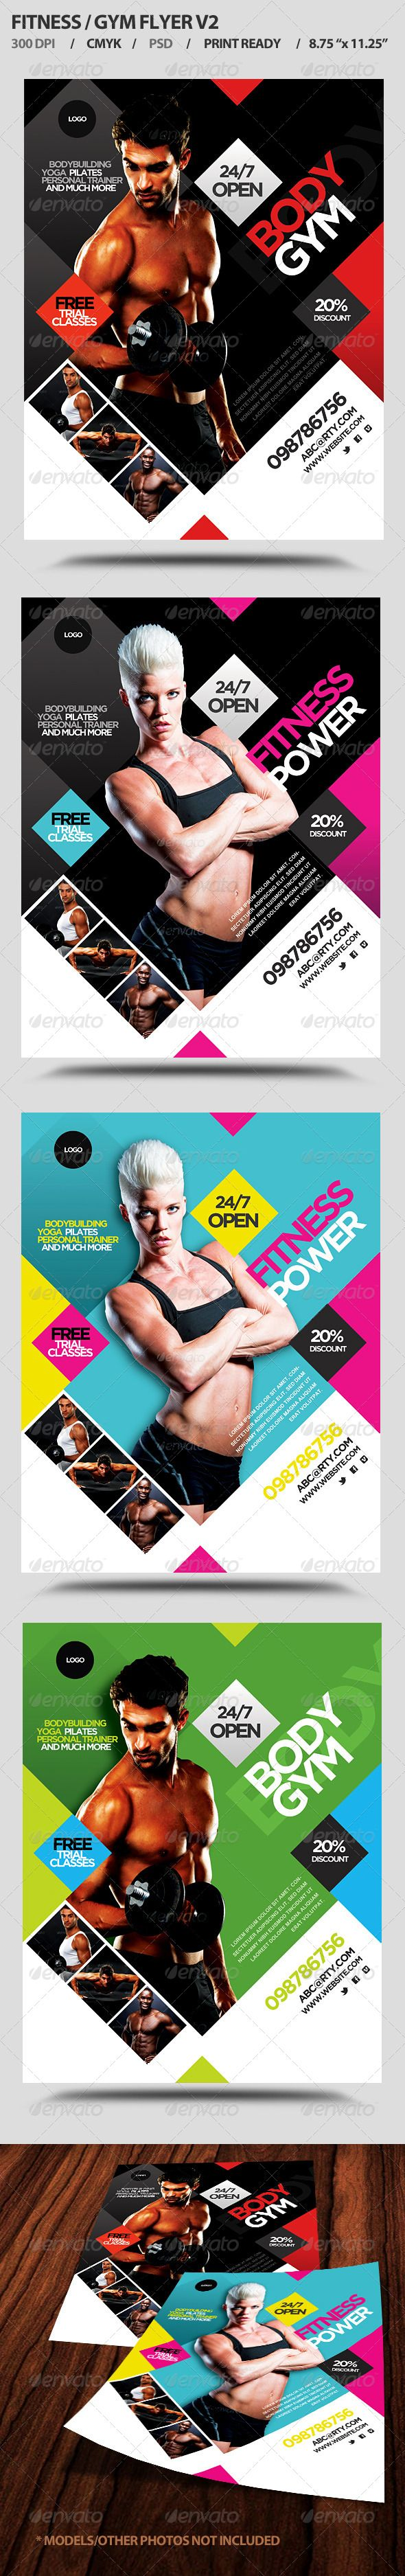 Fitness/Gym Business Promotion Flyer V2